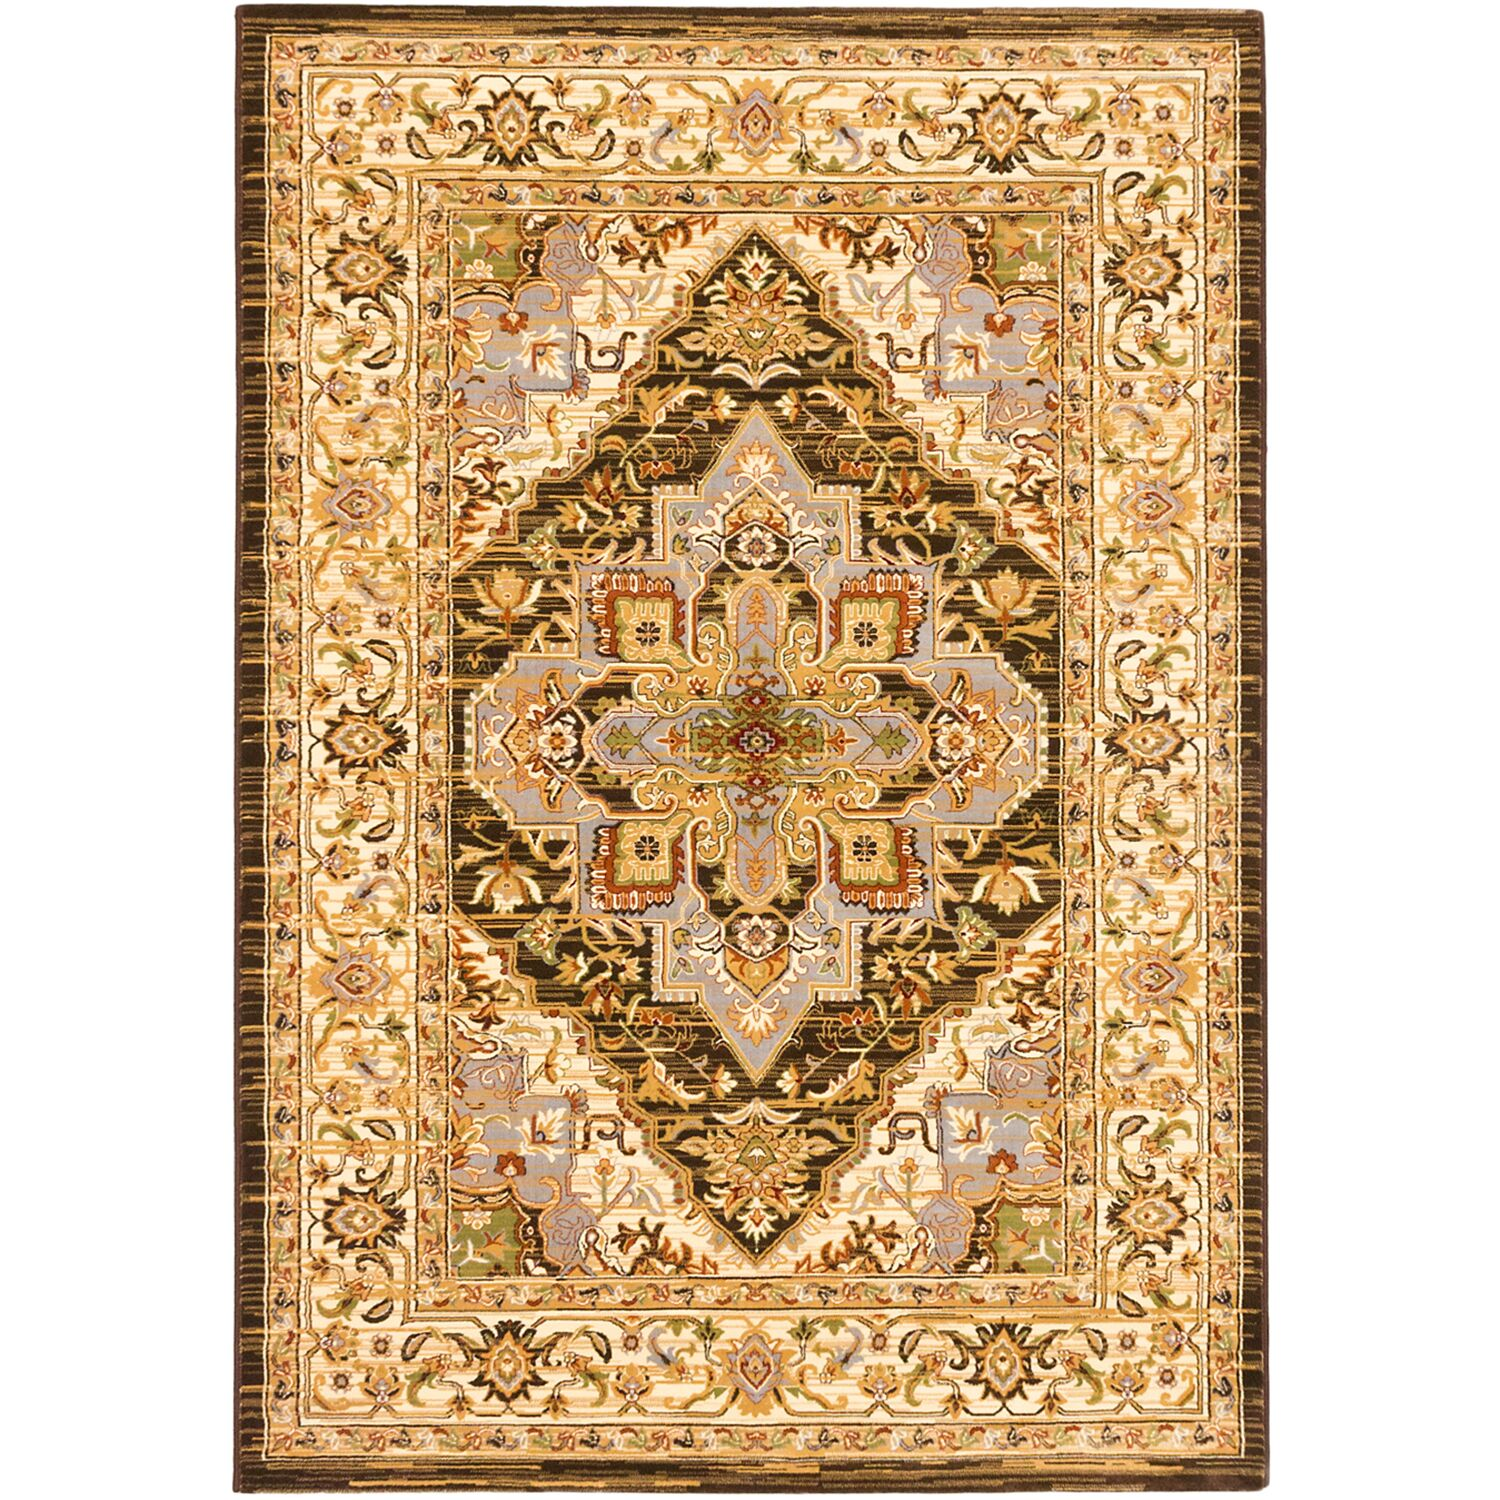 Monalisa Cream/Dark Brown Area Rug Rug Size: 7'10